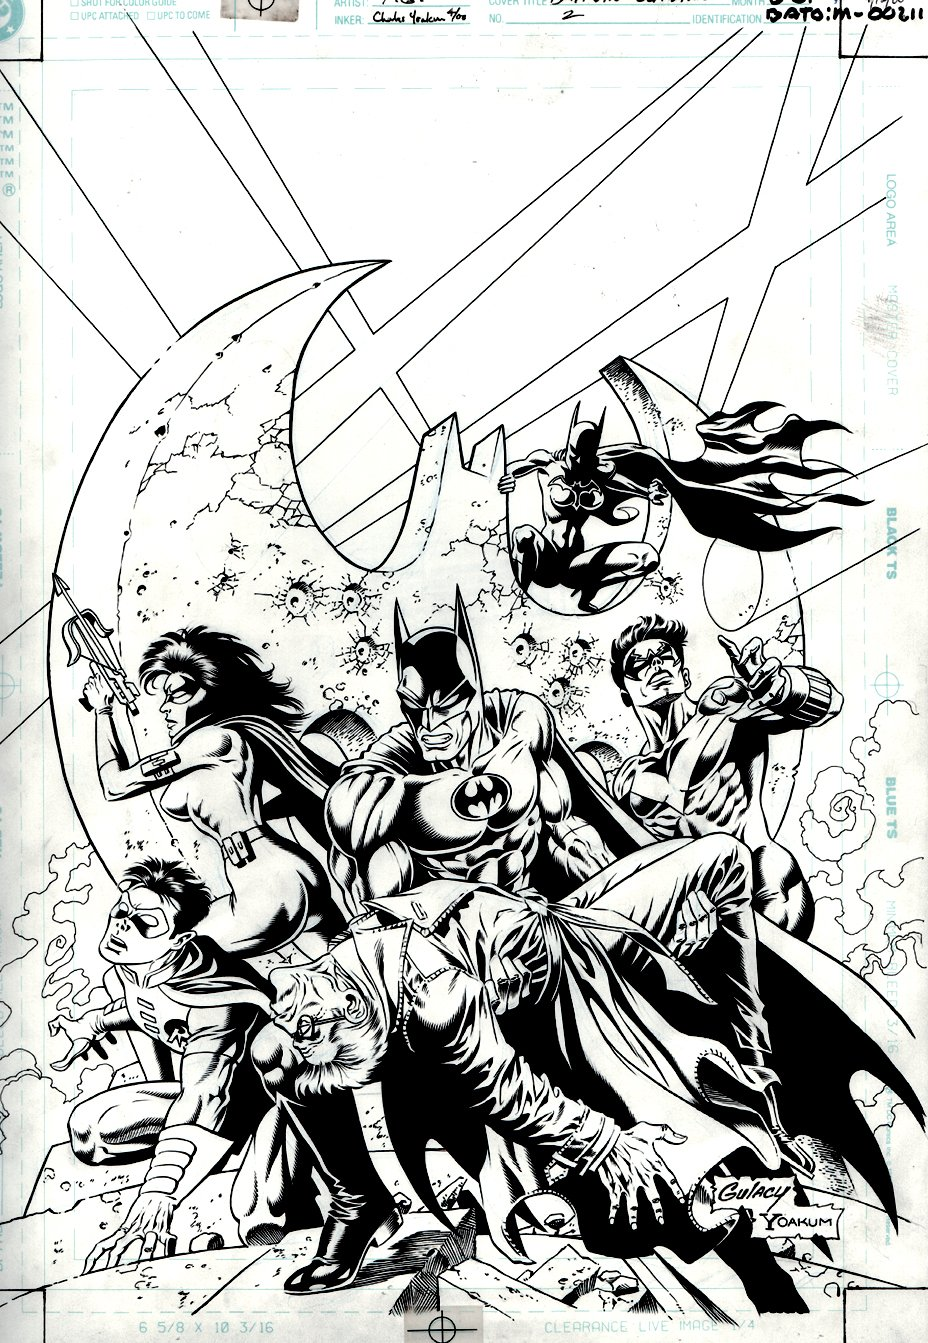 Batman: Outlaws #2 Cover (Batman, Nightwing, Batgirl, Huntress, Robin) 2000